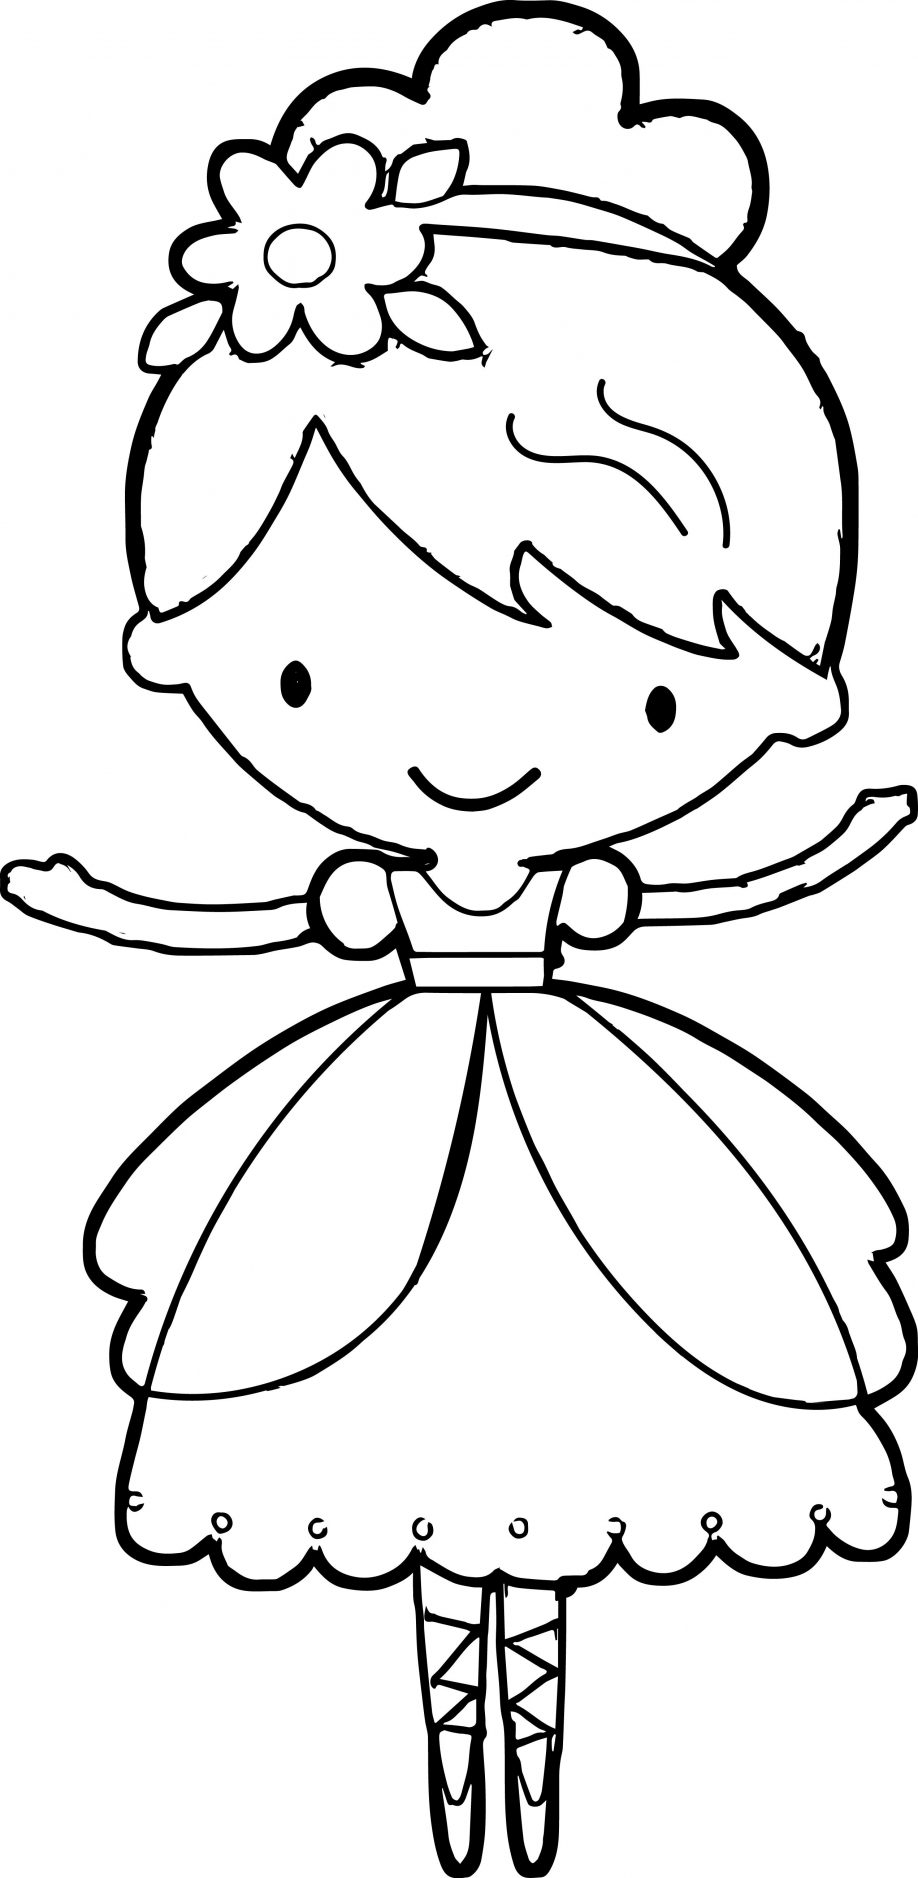 918x1878 Absolutely Ideas Ballerina Coloring Pages For Adults First